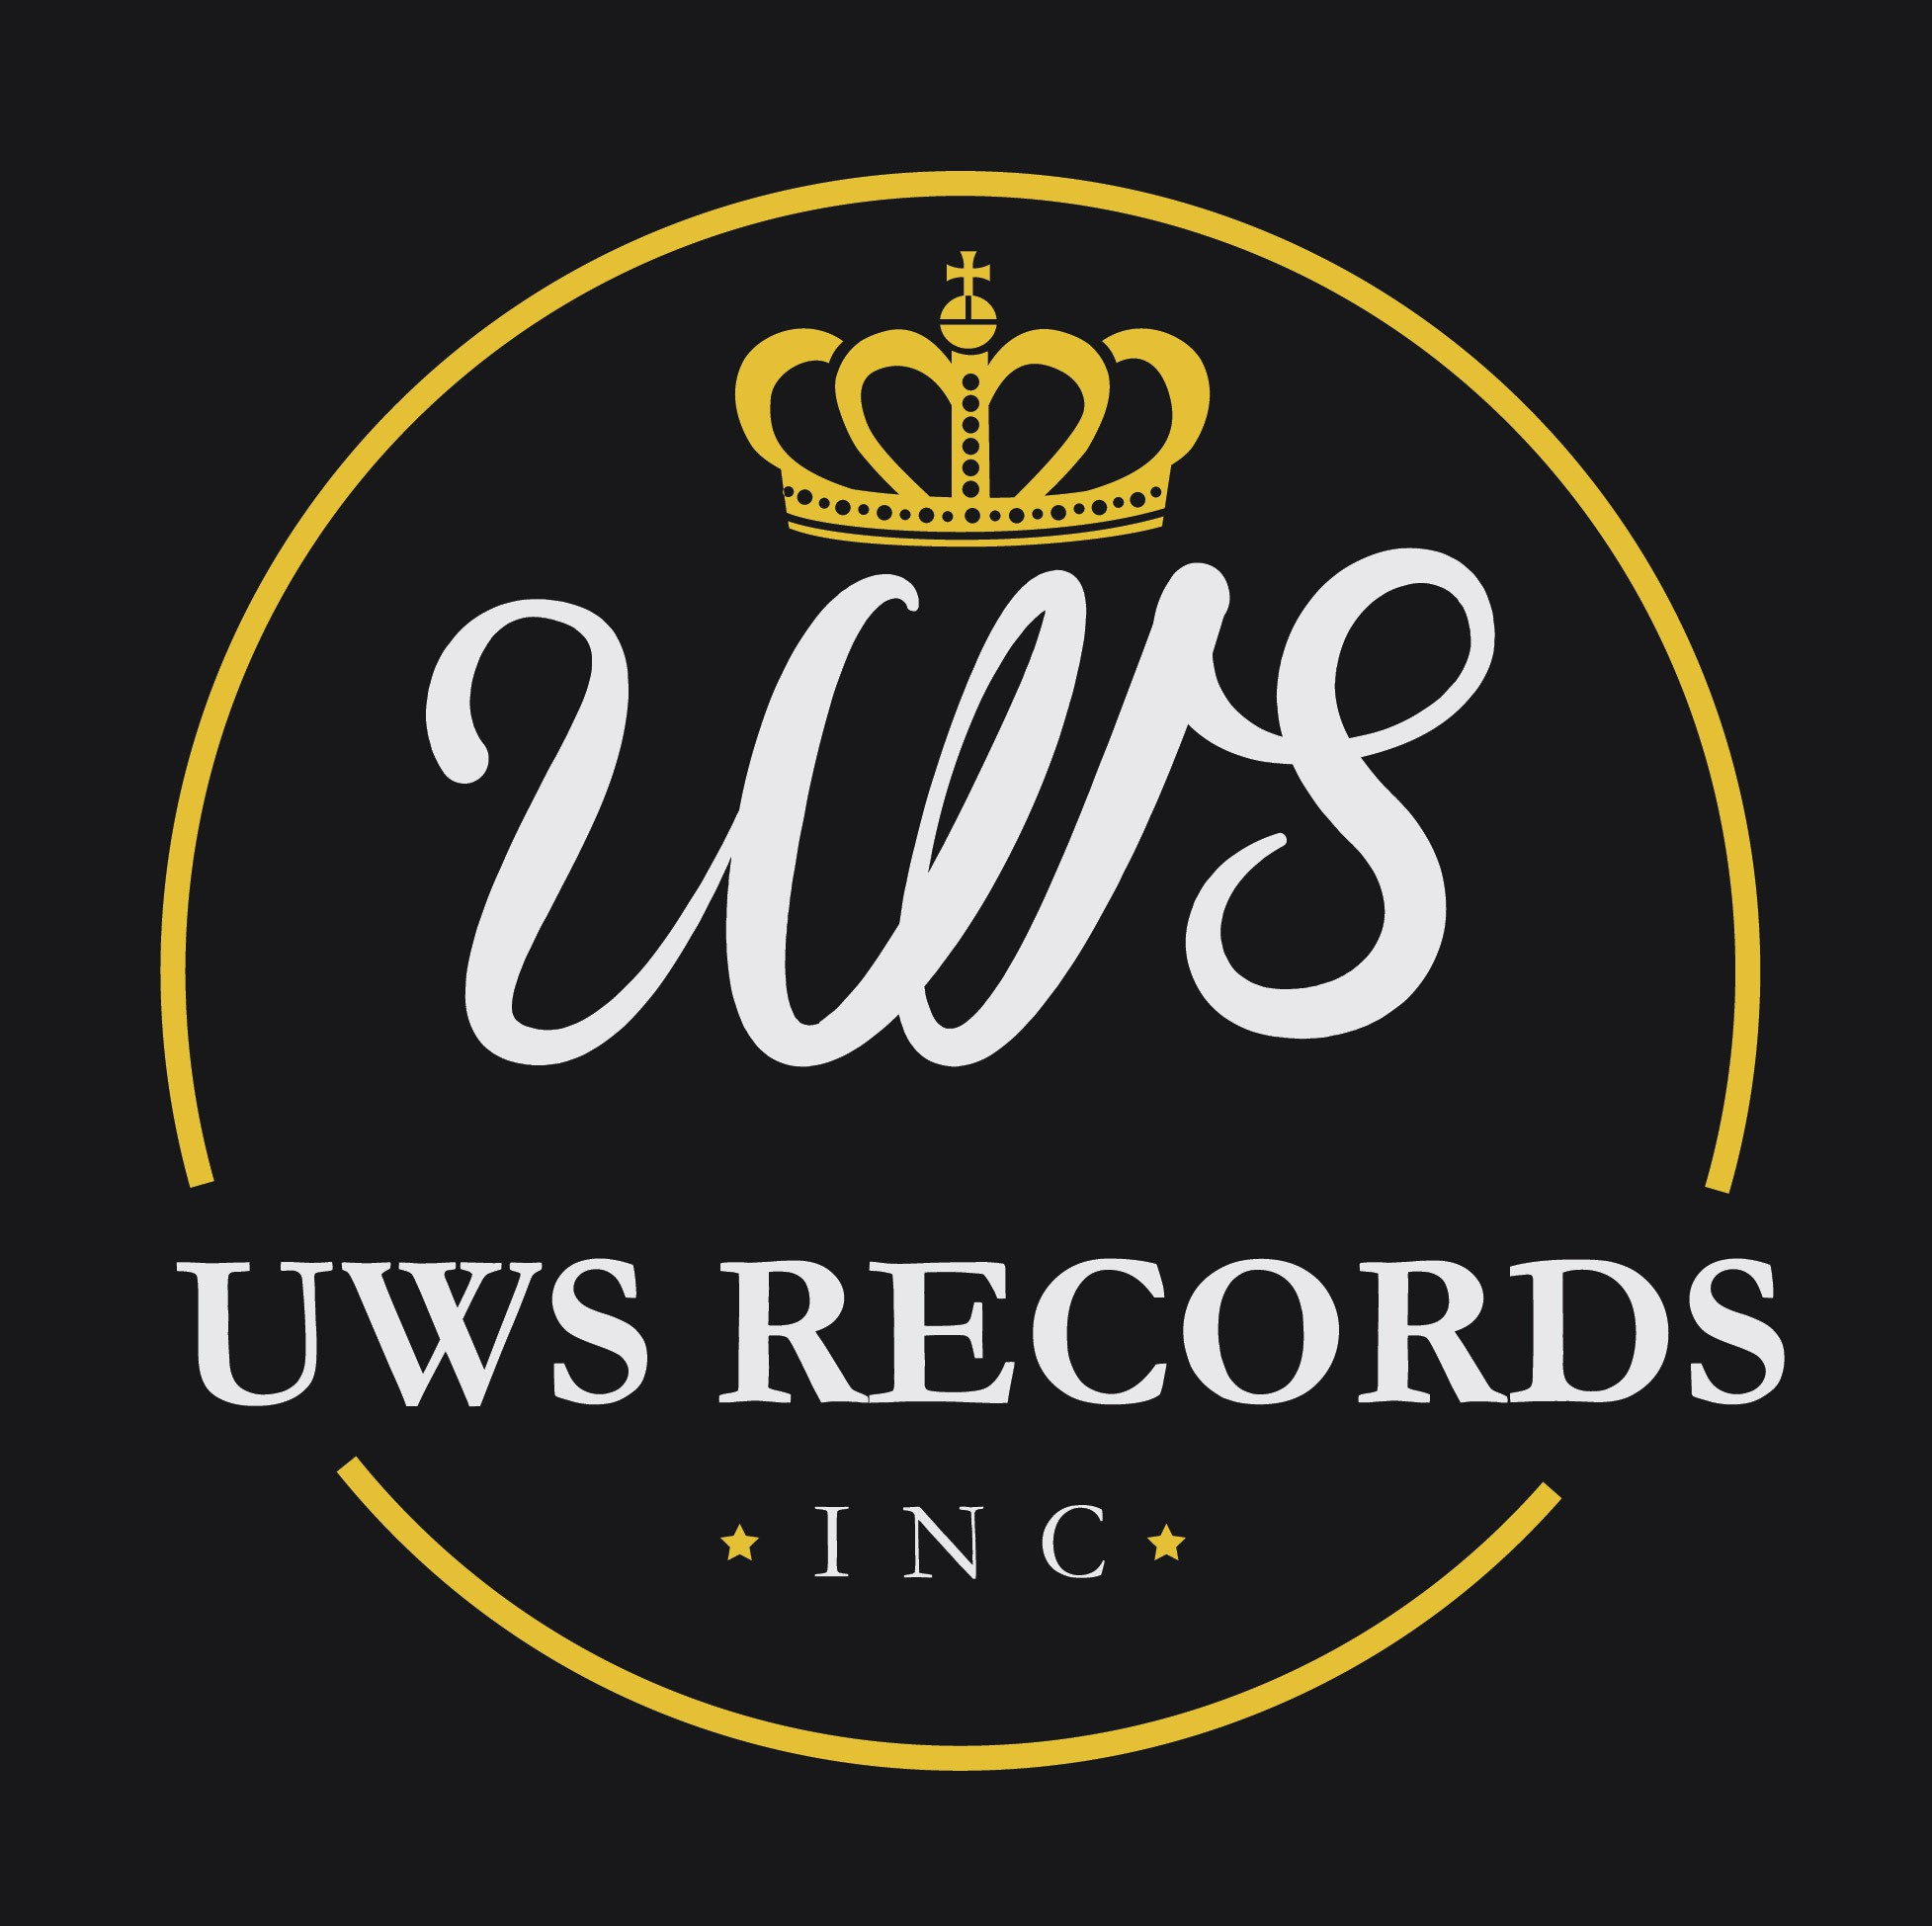 New record label looking for a website and logo